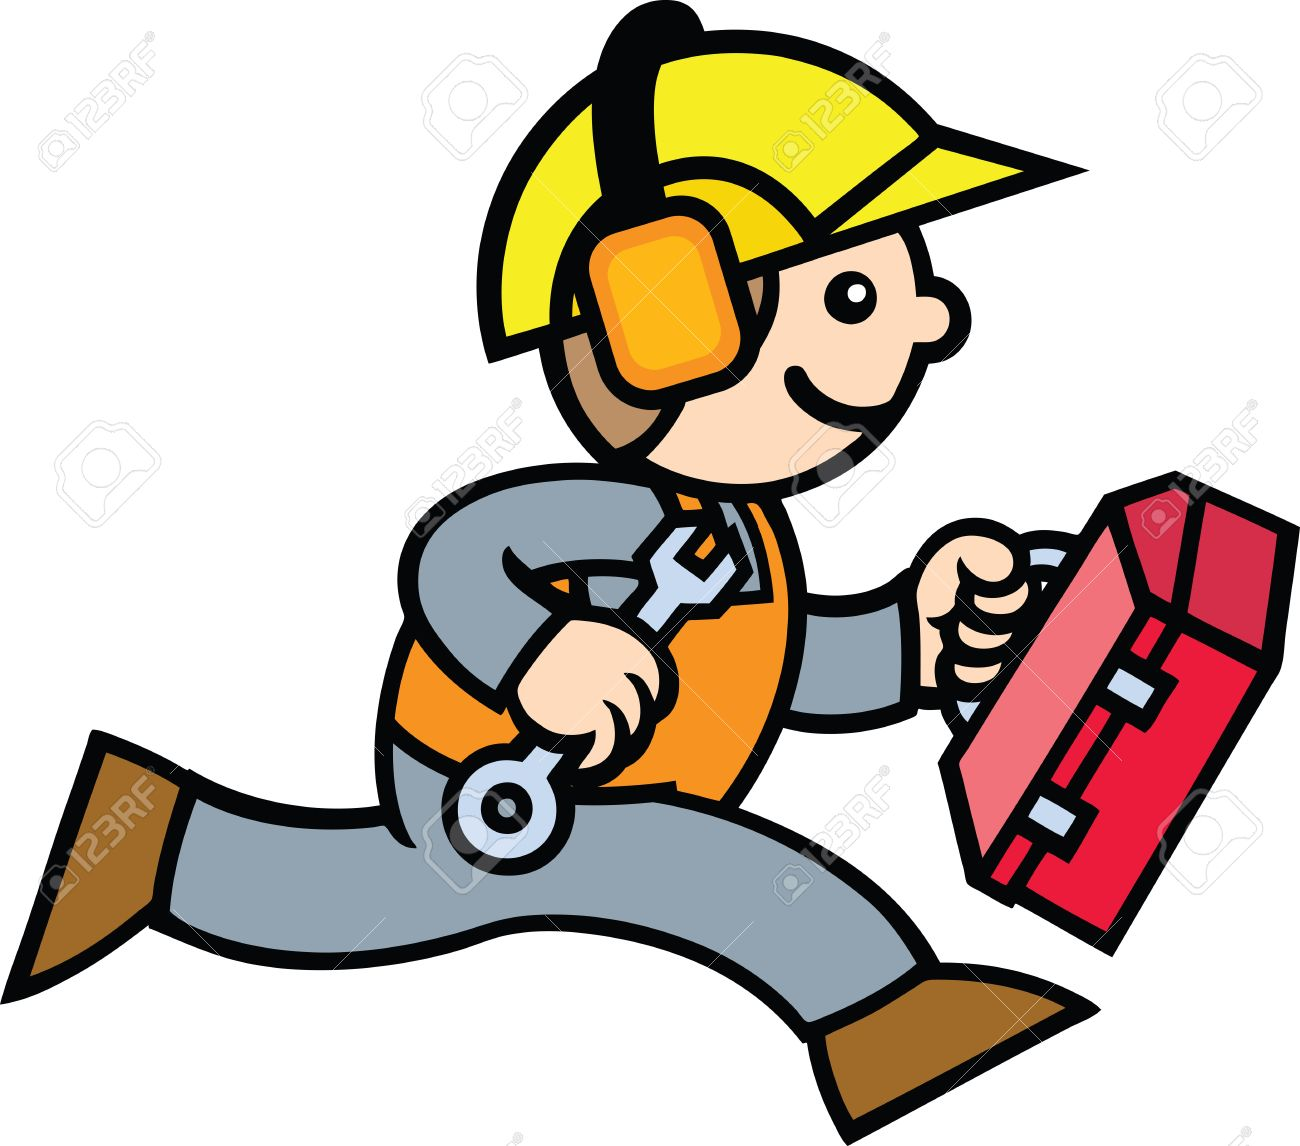 Construction Guy Royalty Free Cliparts, Vectors, And Stock.